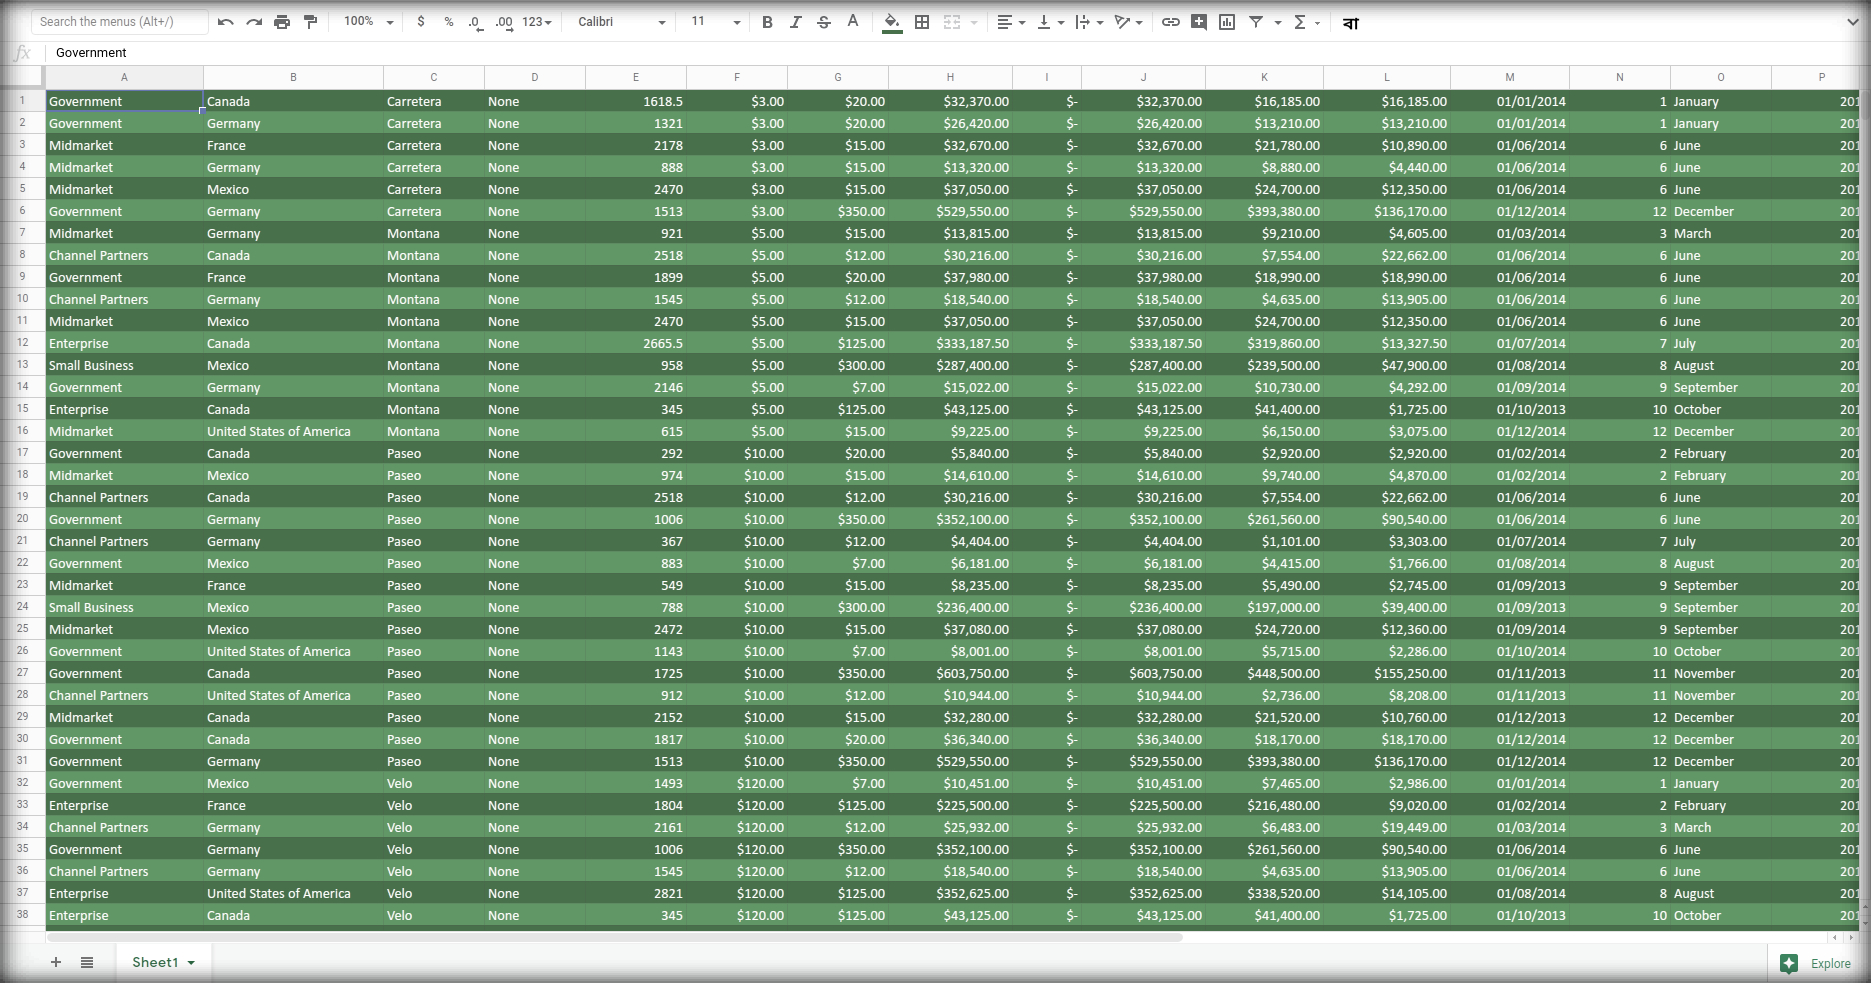 From CSV to Google Sheet Using Python